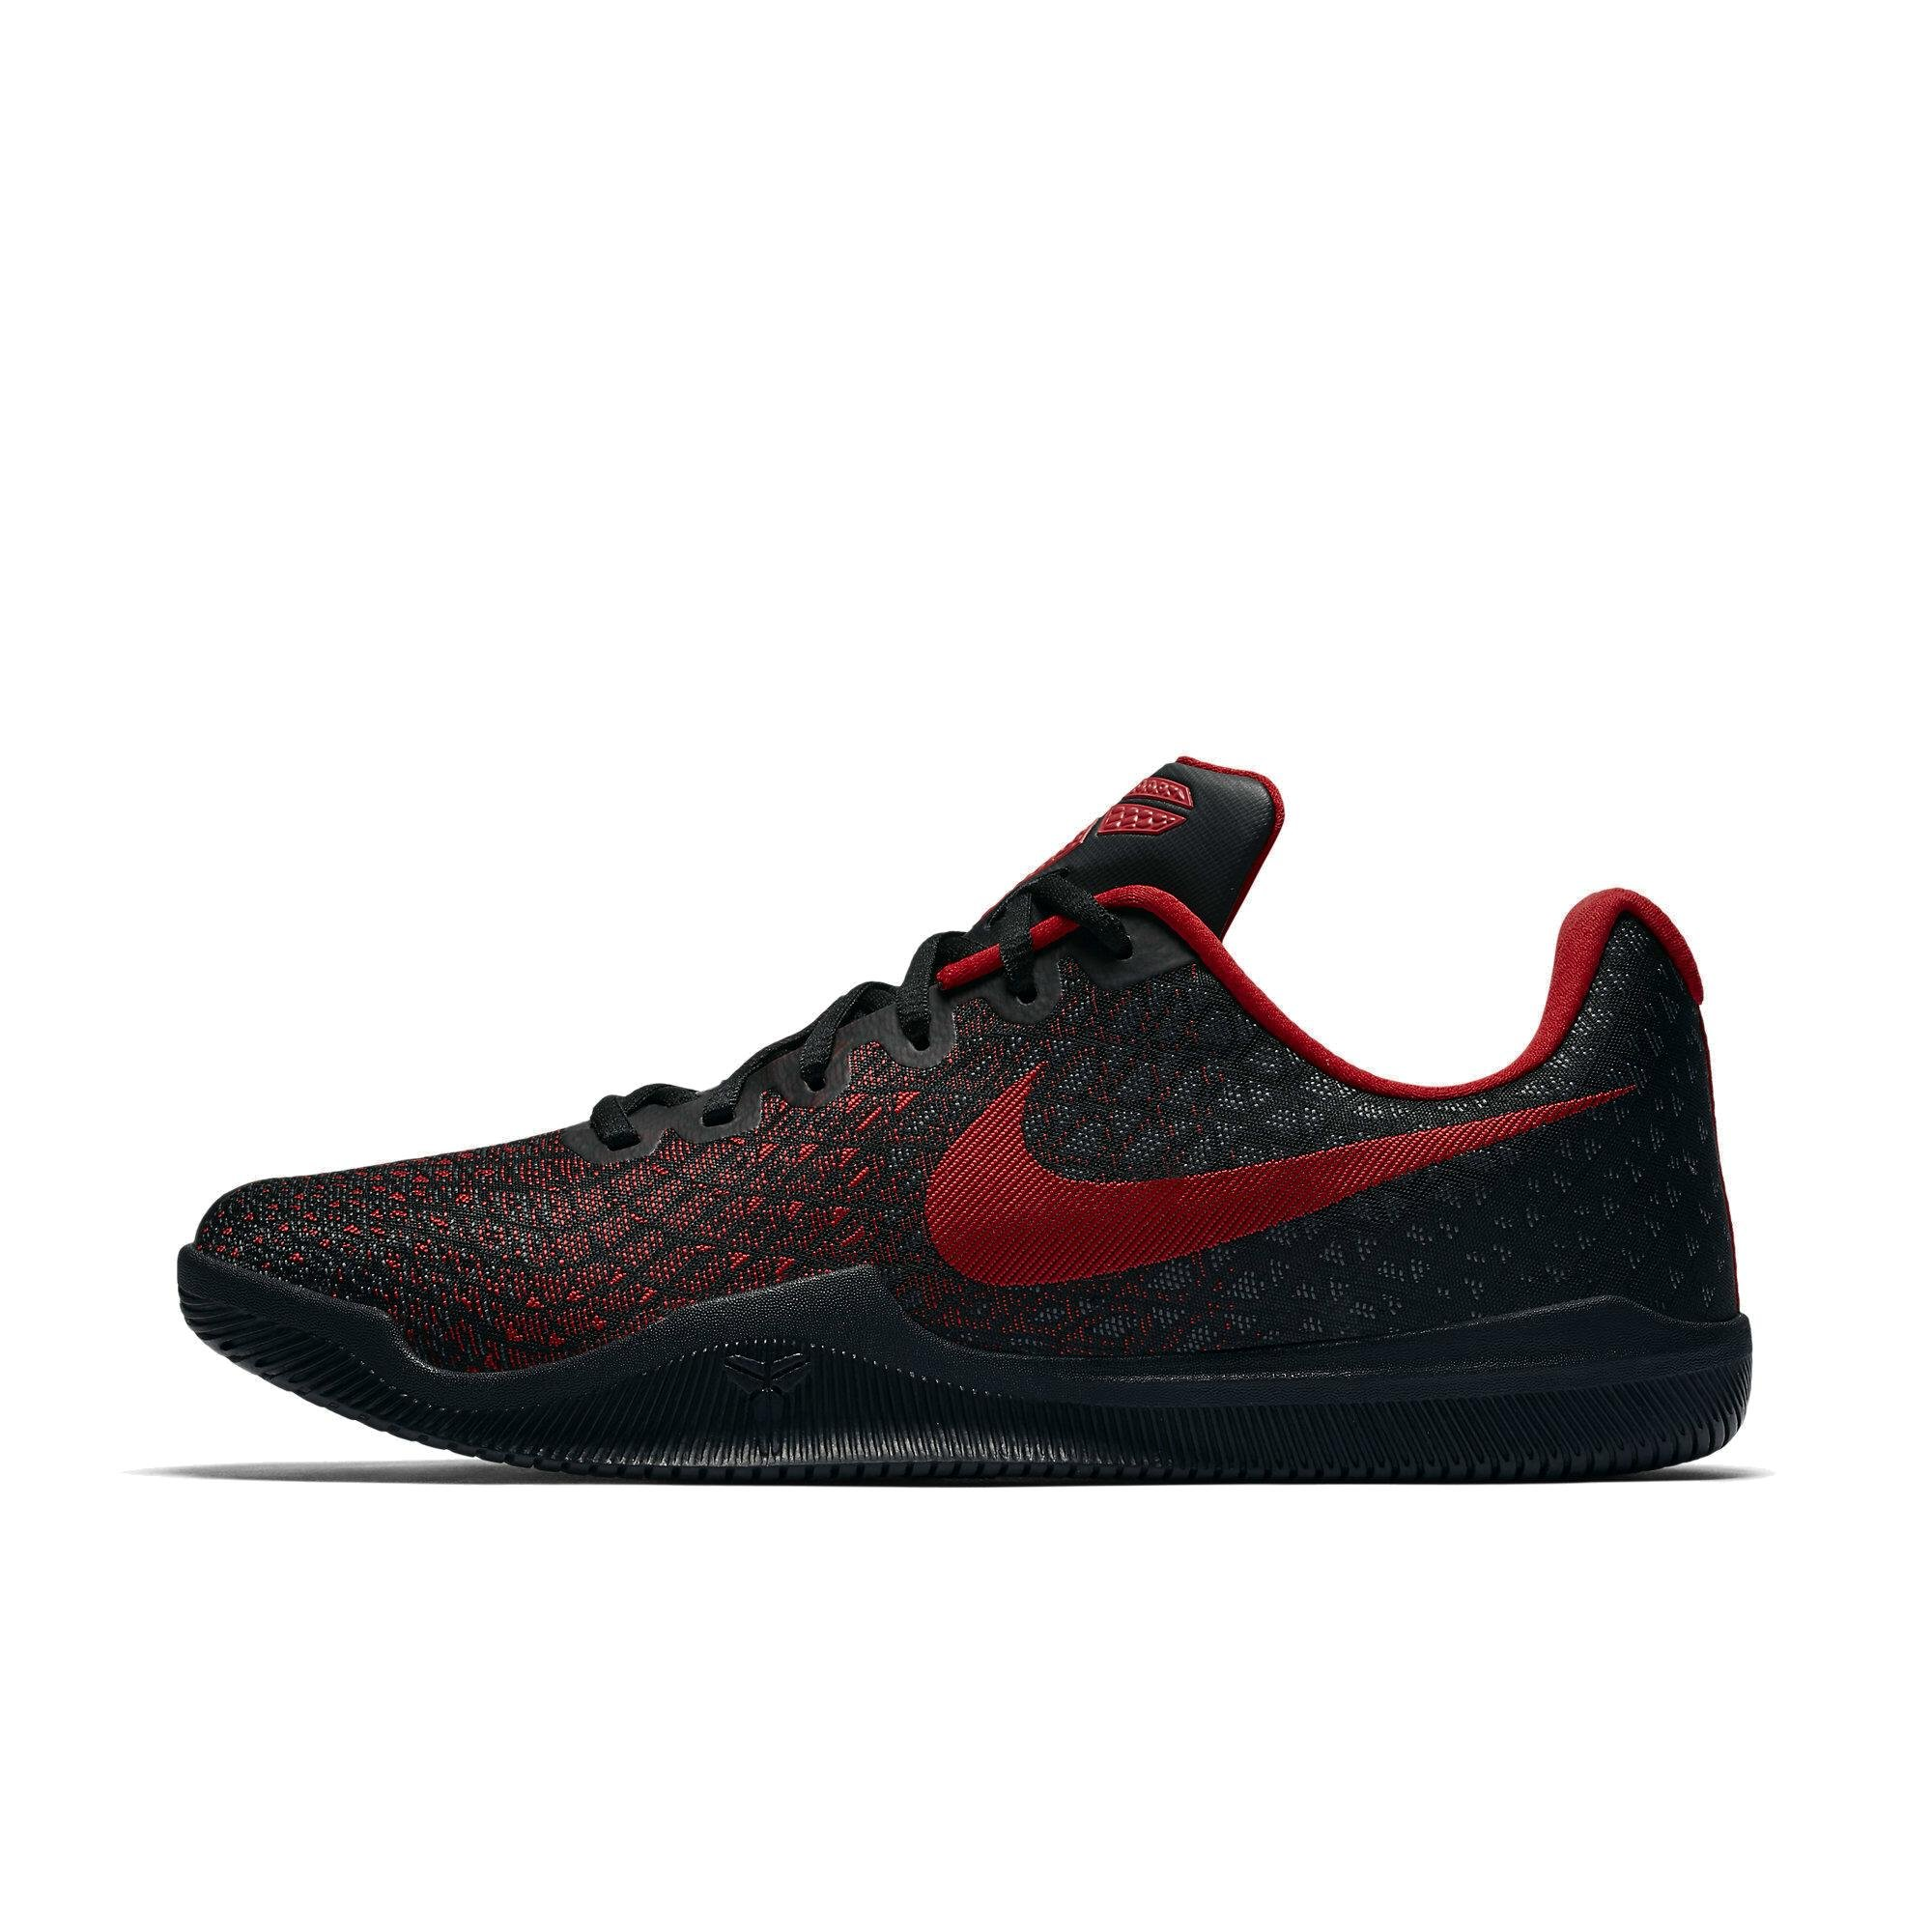 e43649e370a8a8 Galleon - NIKE Men s Kobe Mamba Instinct Basketball Shoes (14